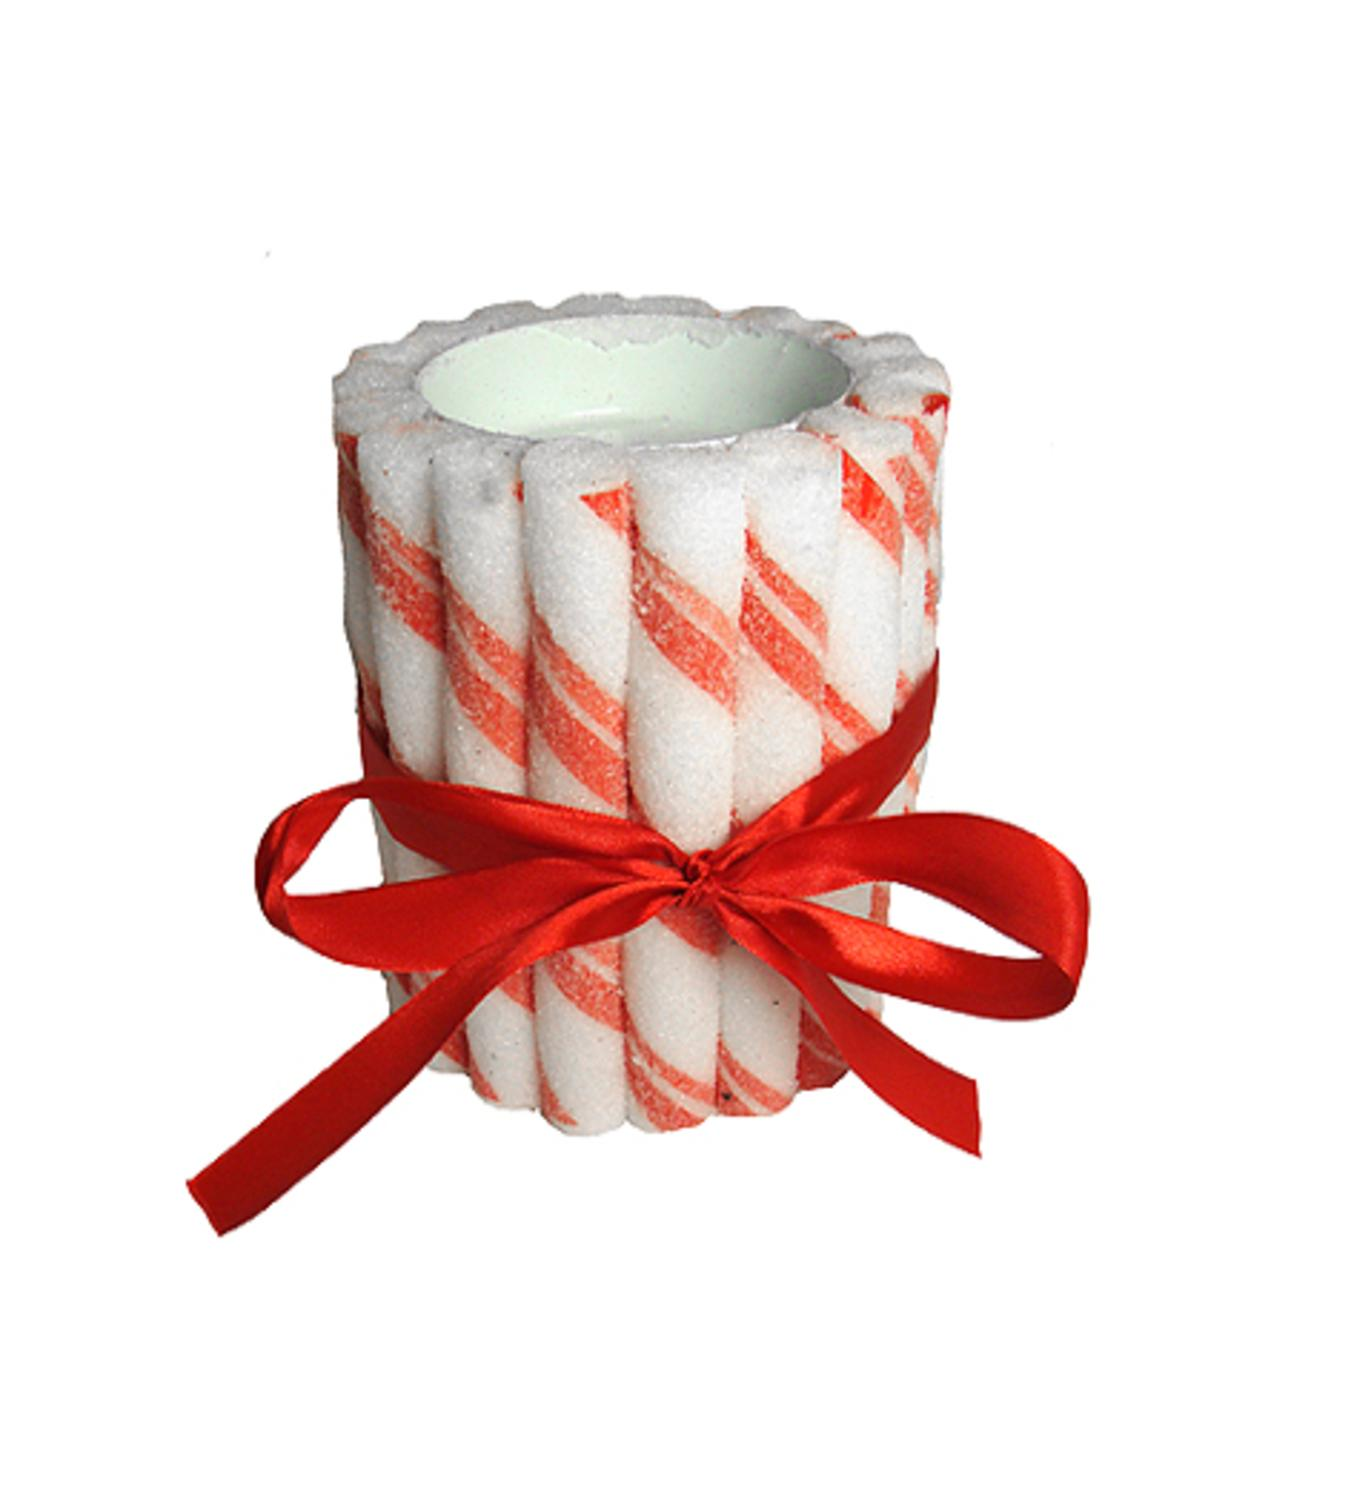 "3"" Peppermint Twist Sugared Candy Tealight Candle Holder"